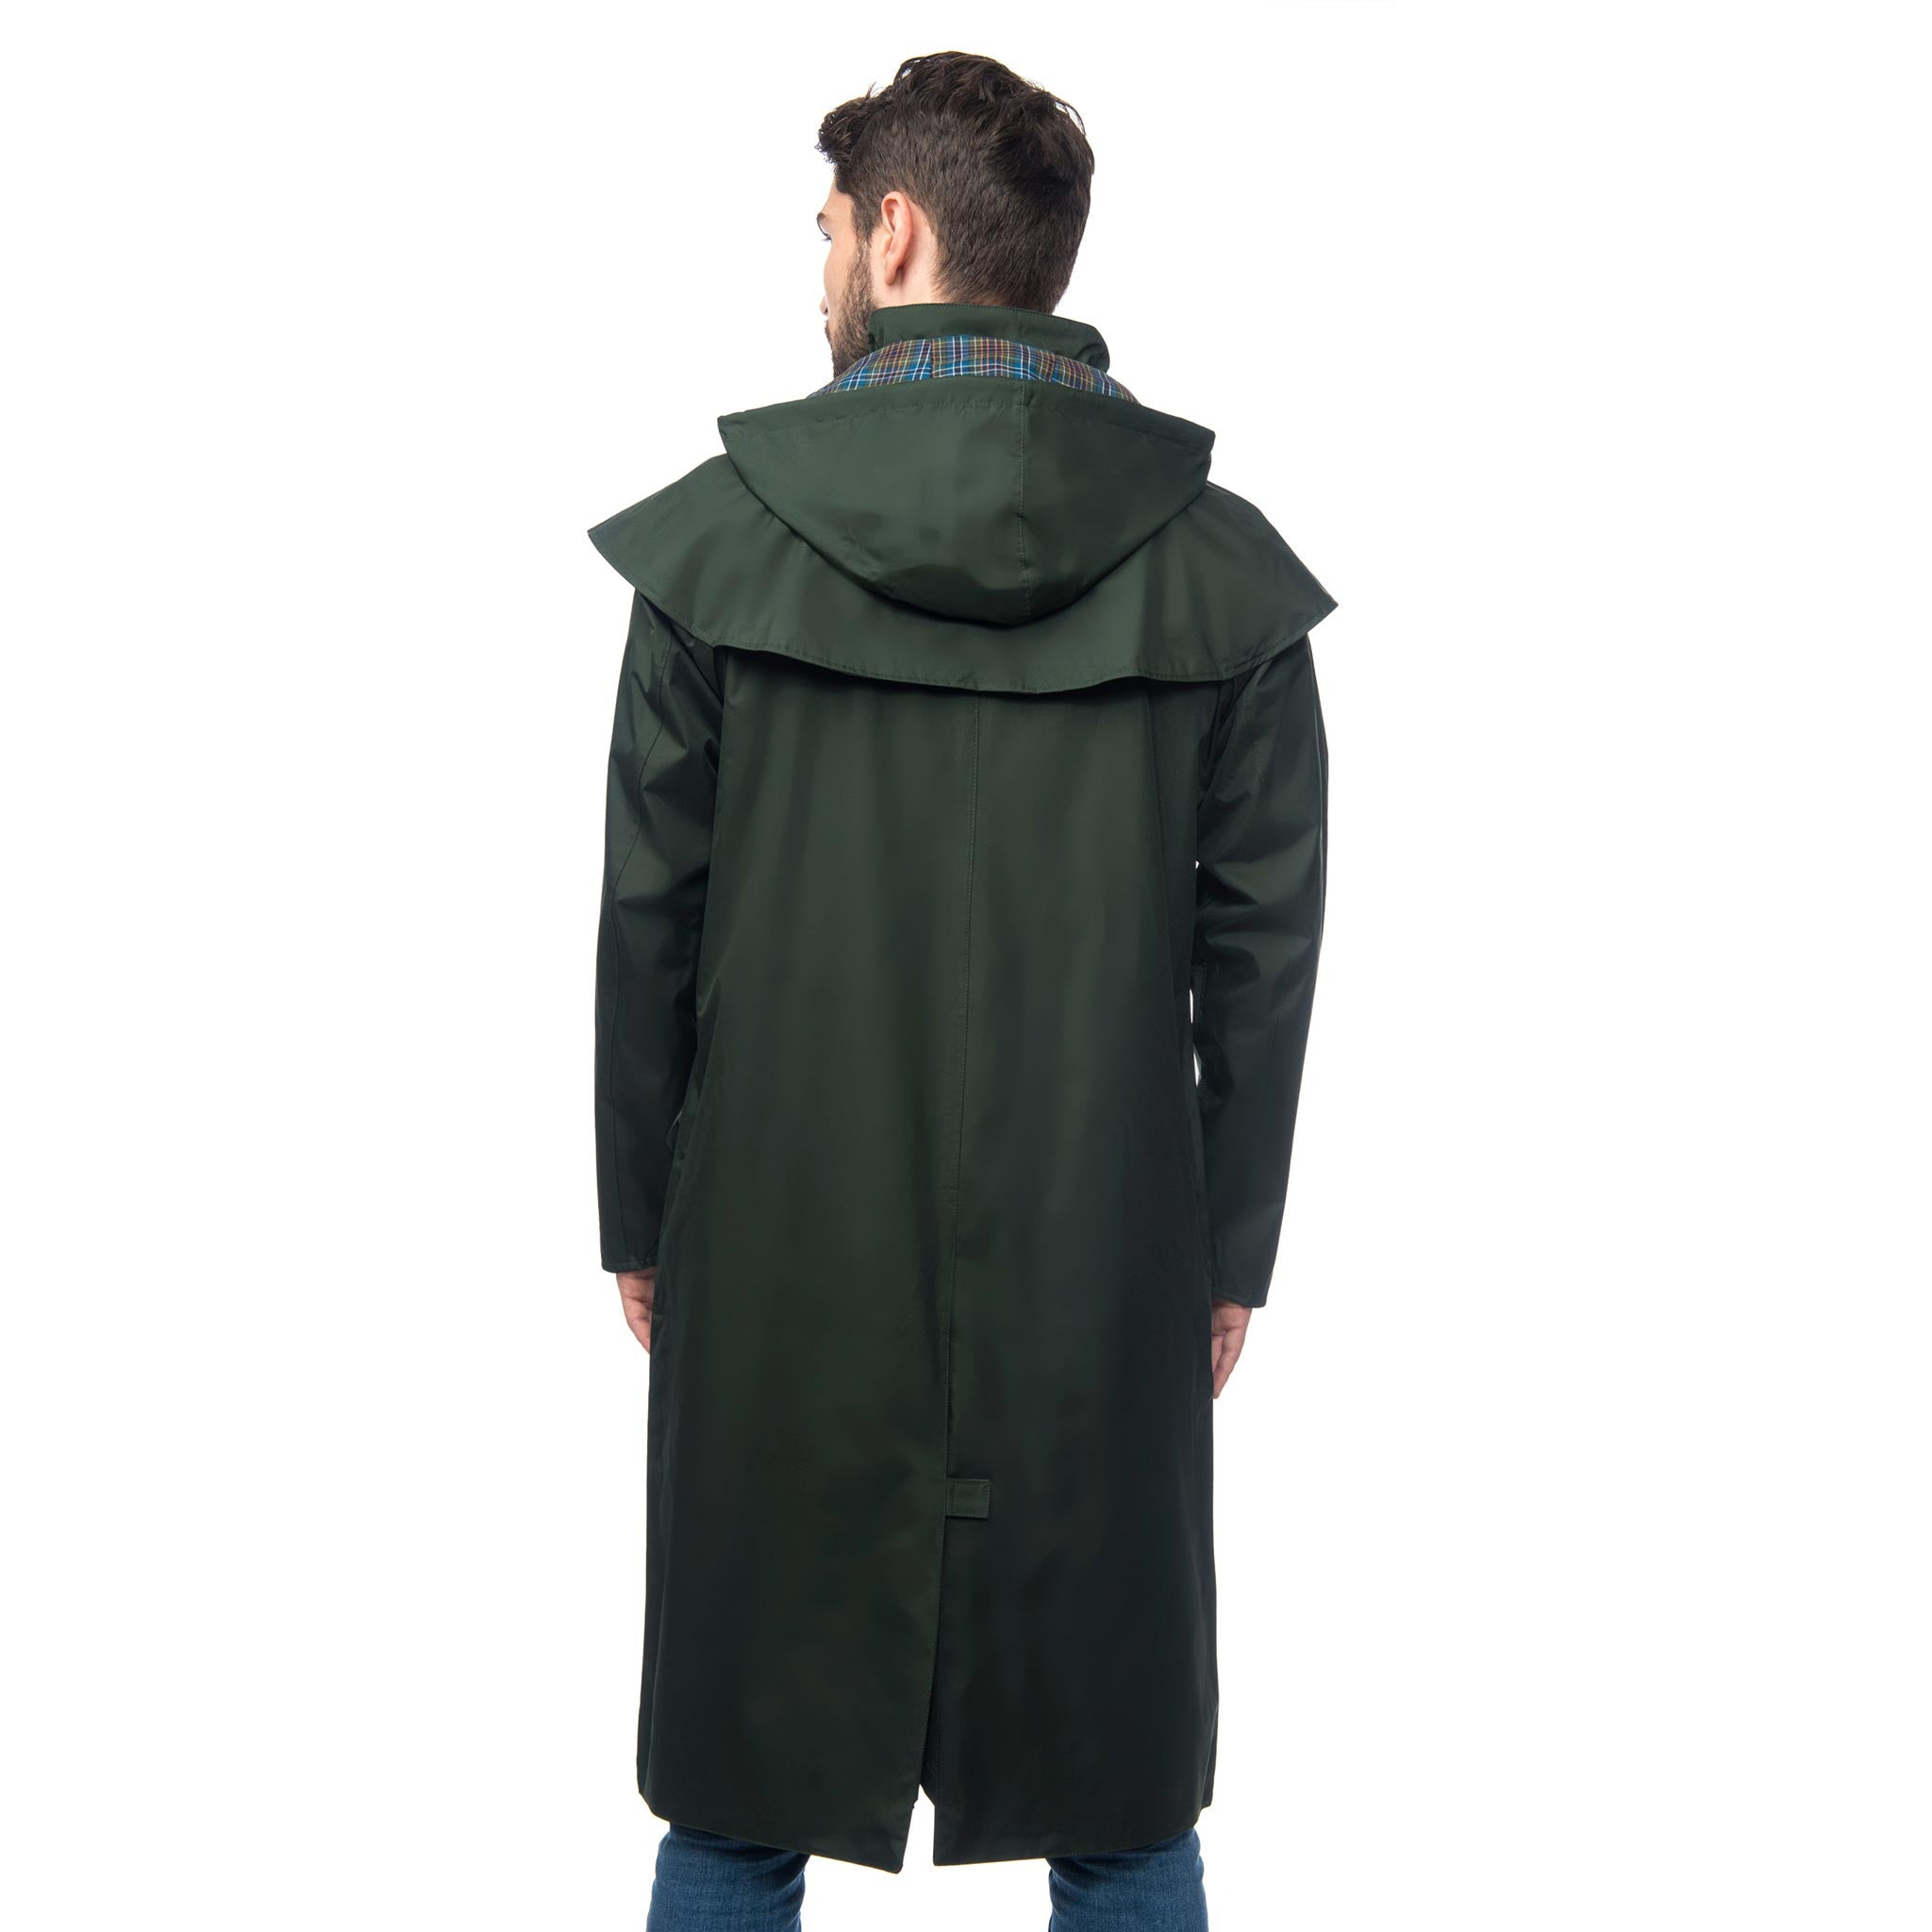 Lighthouse Mens Stockman Full Length Waterproof Rain Coat in green.  Zipped and buttoned.